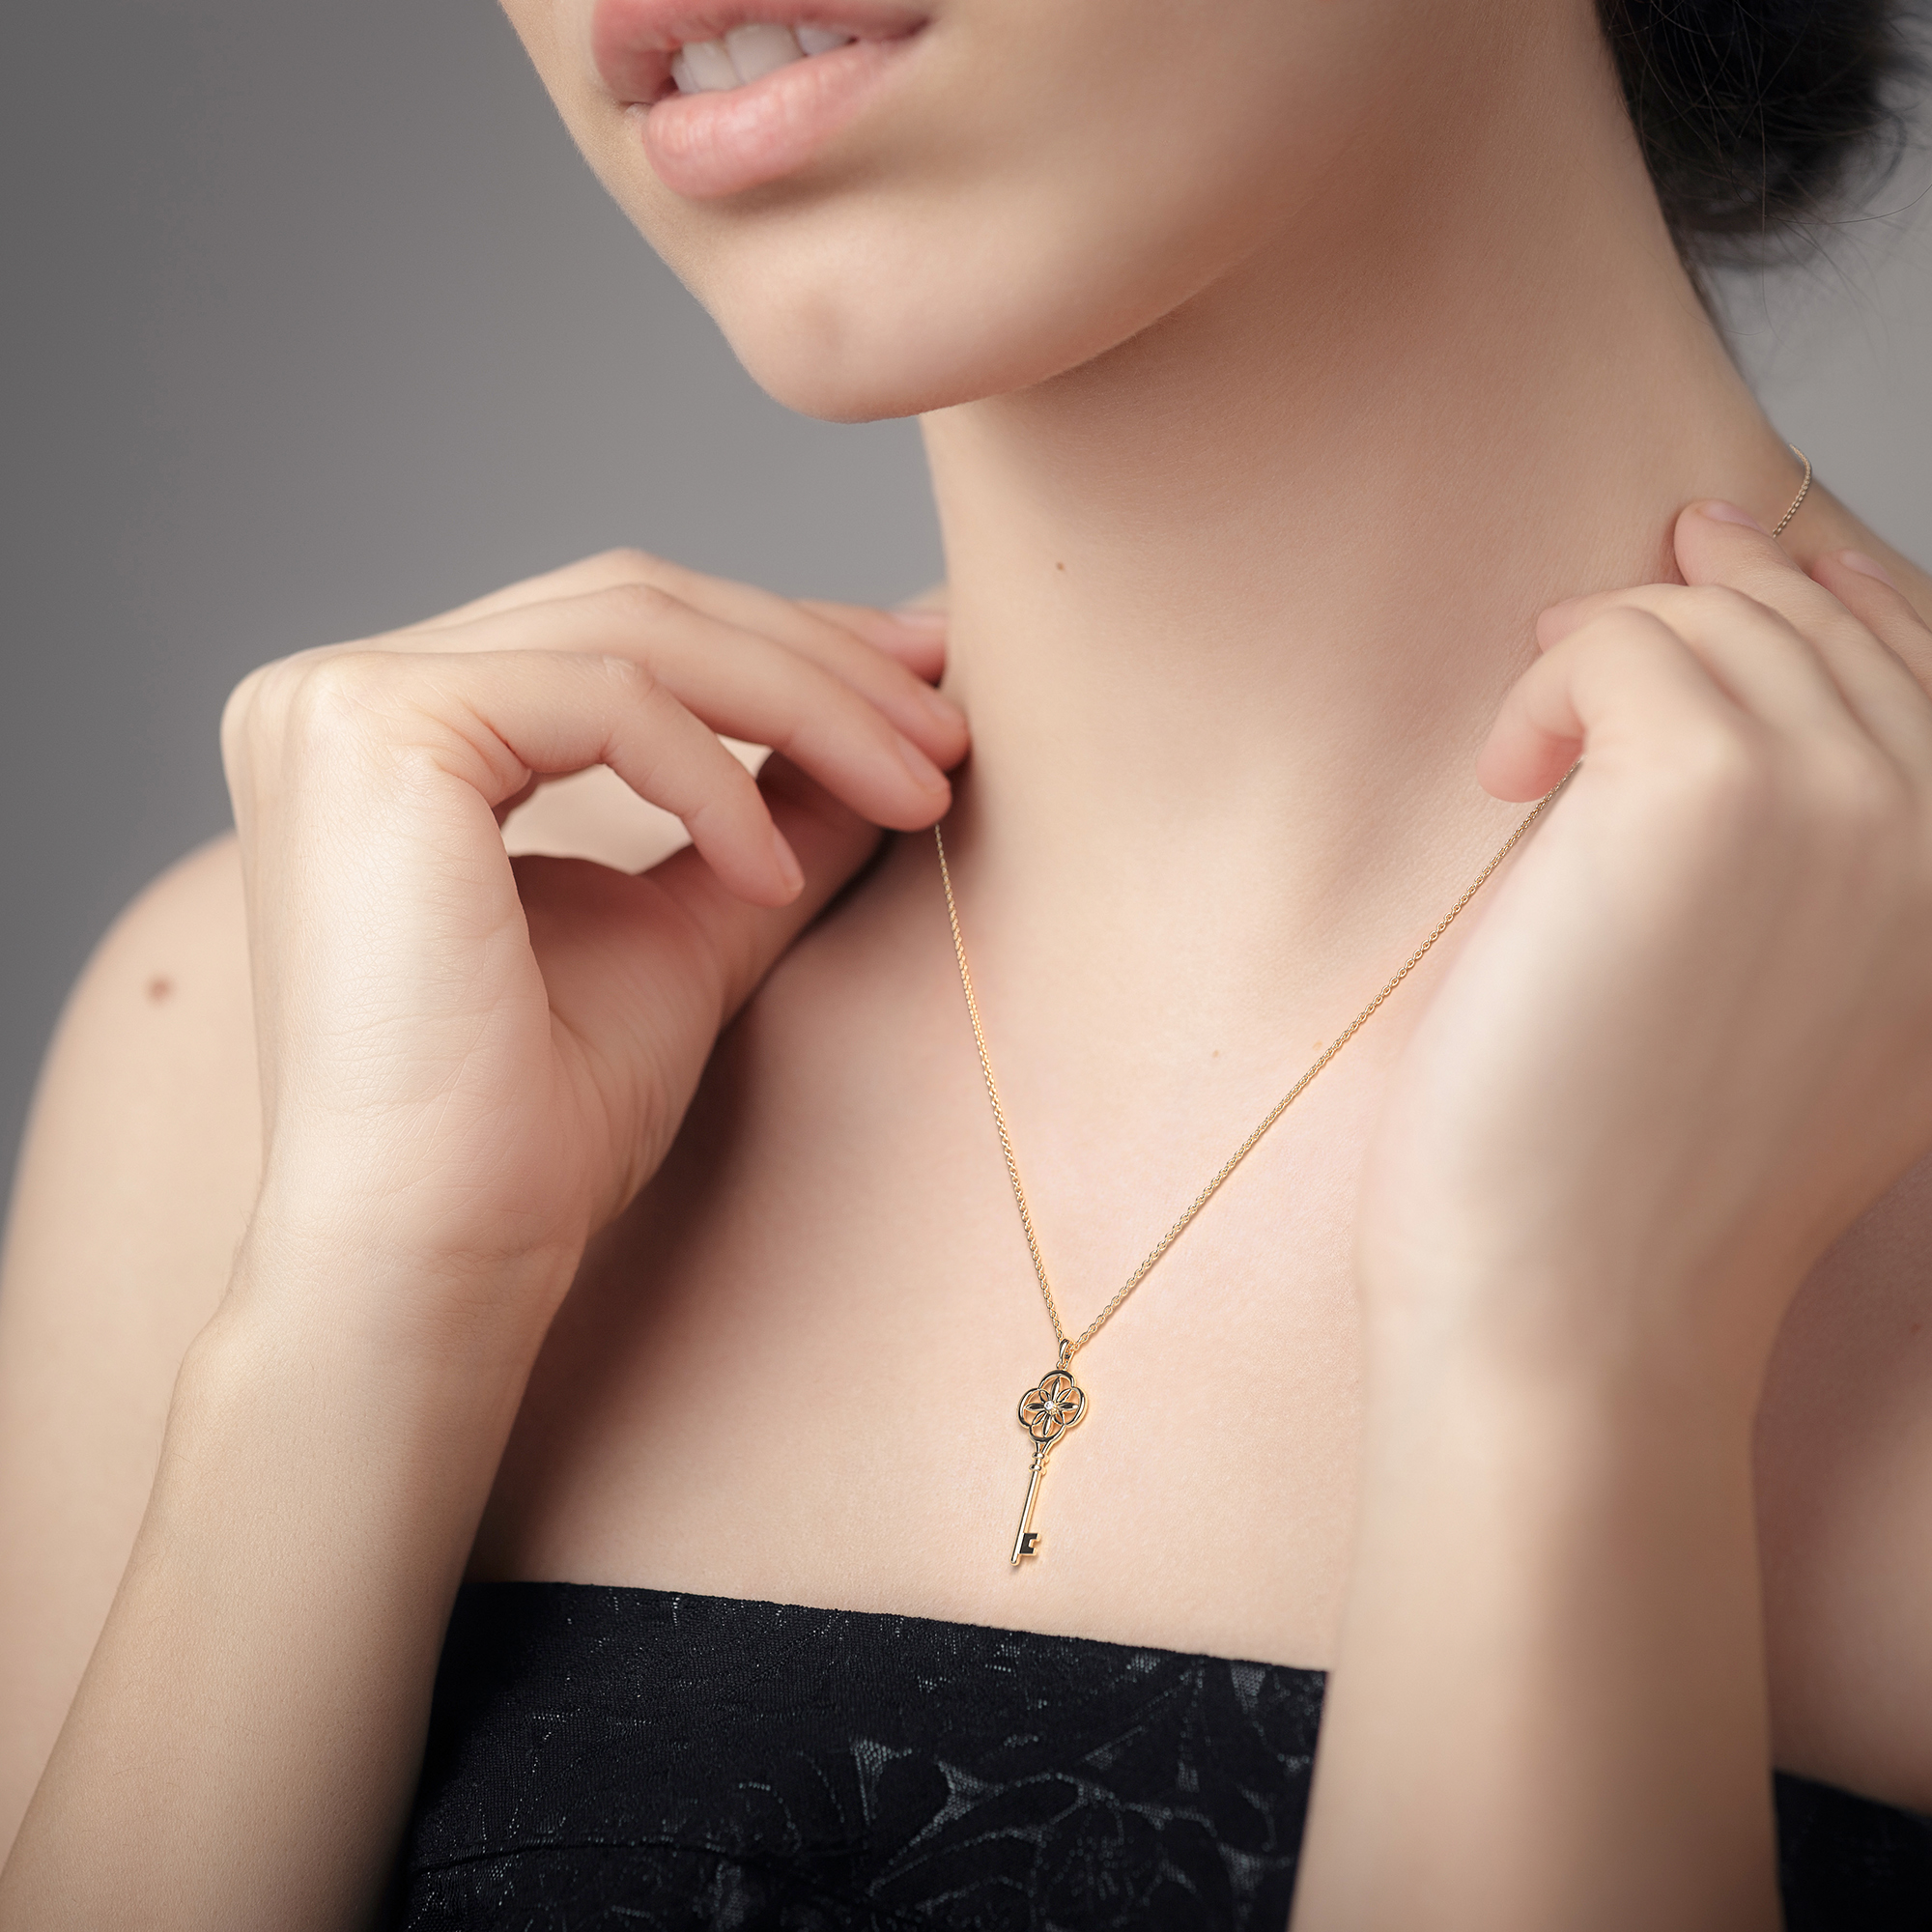 Diamond Key Pendant Necklace Womens Gift 14K Solid Gold Bridal Jewelry